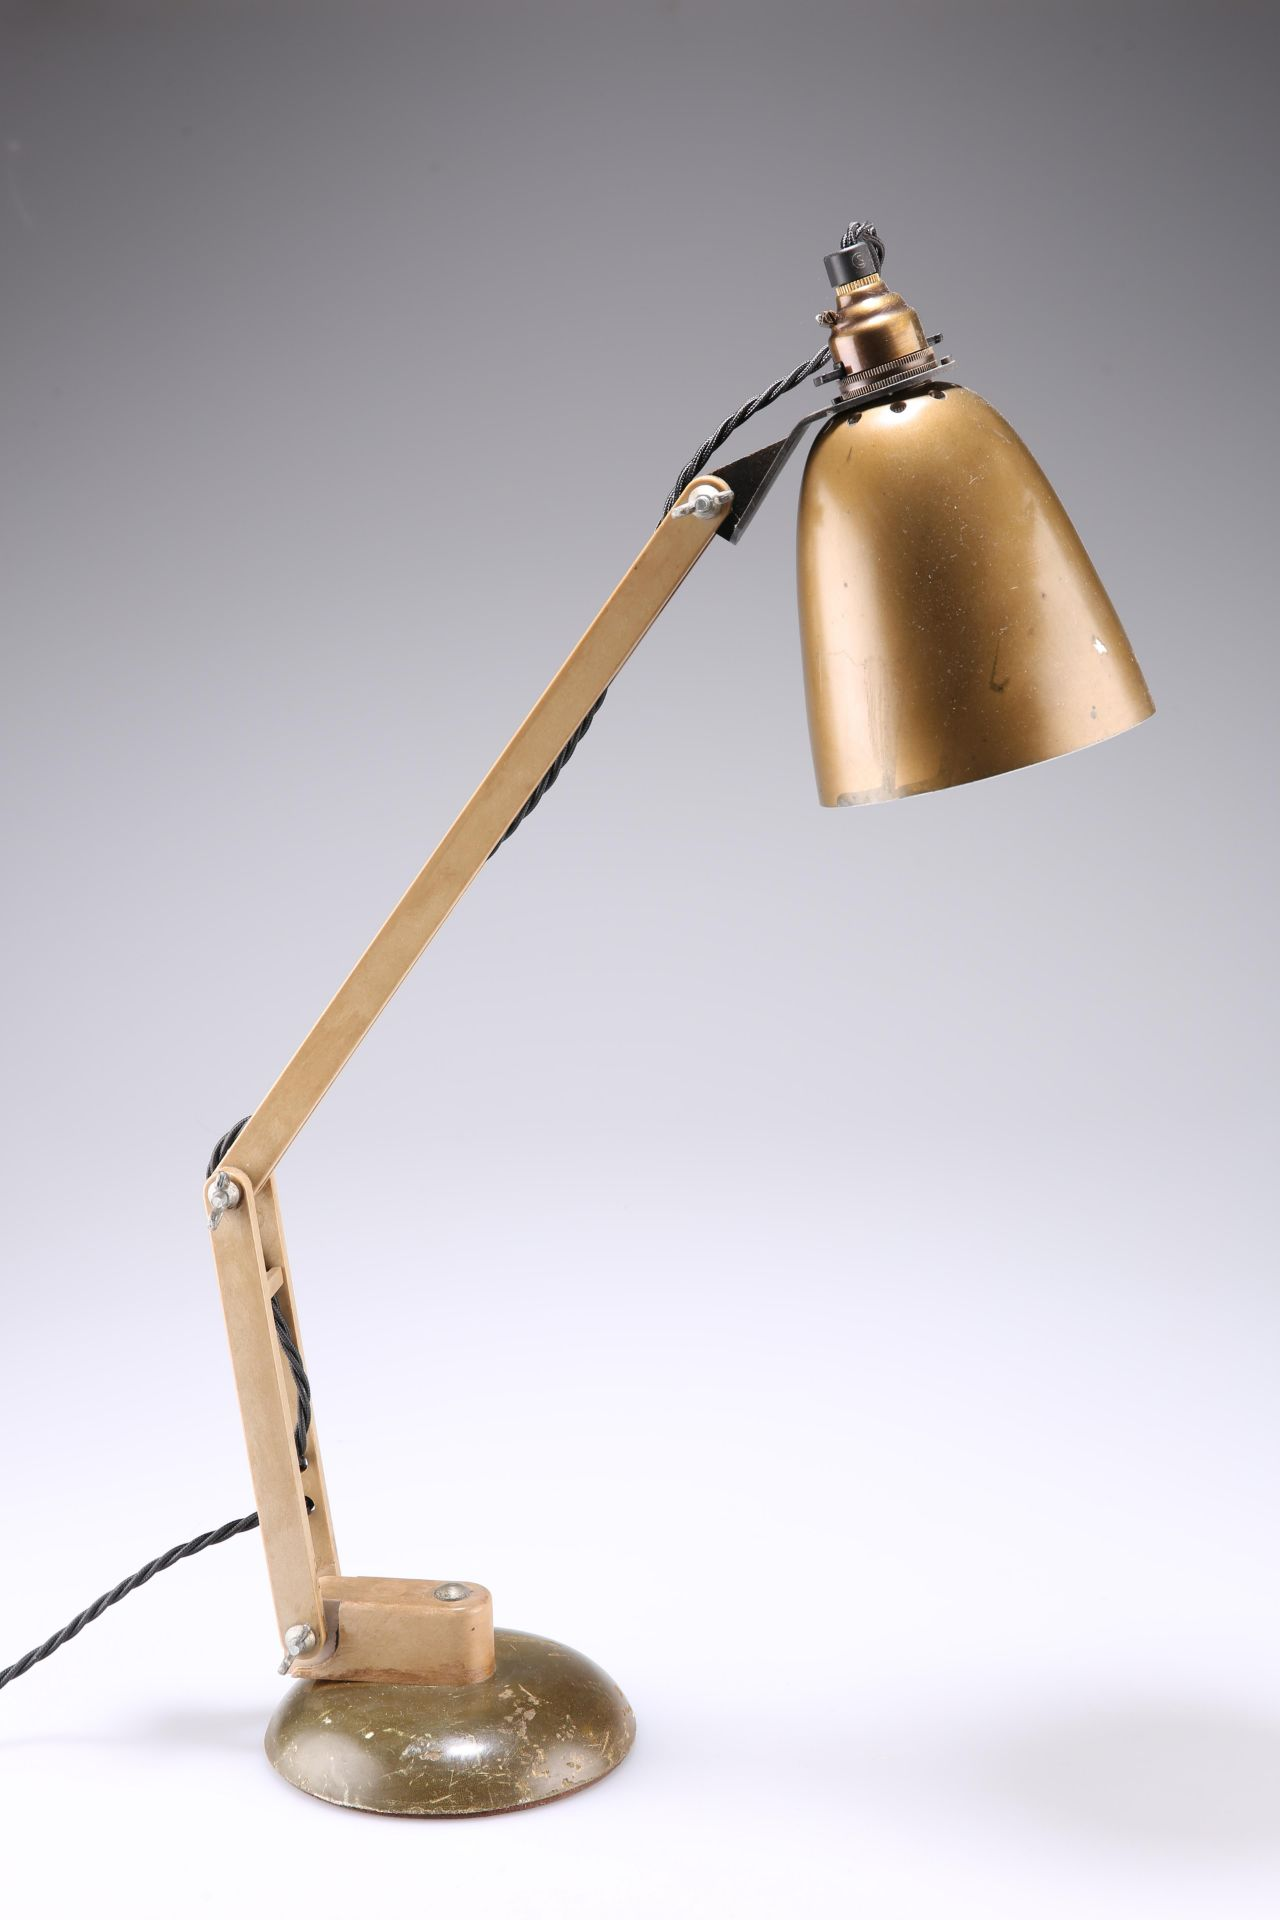 SIR TERENCE CONRAN (1931-2020), FOR HABITAT, MAC LAMP, CIRCA 1960s, anglepoise desk lamp with bronze